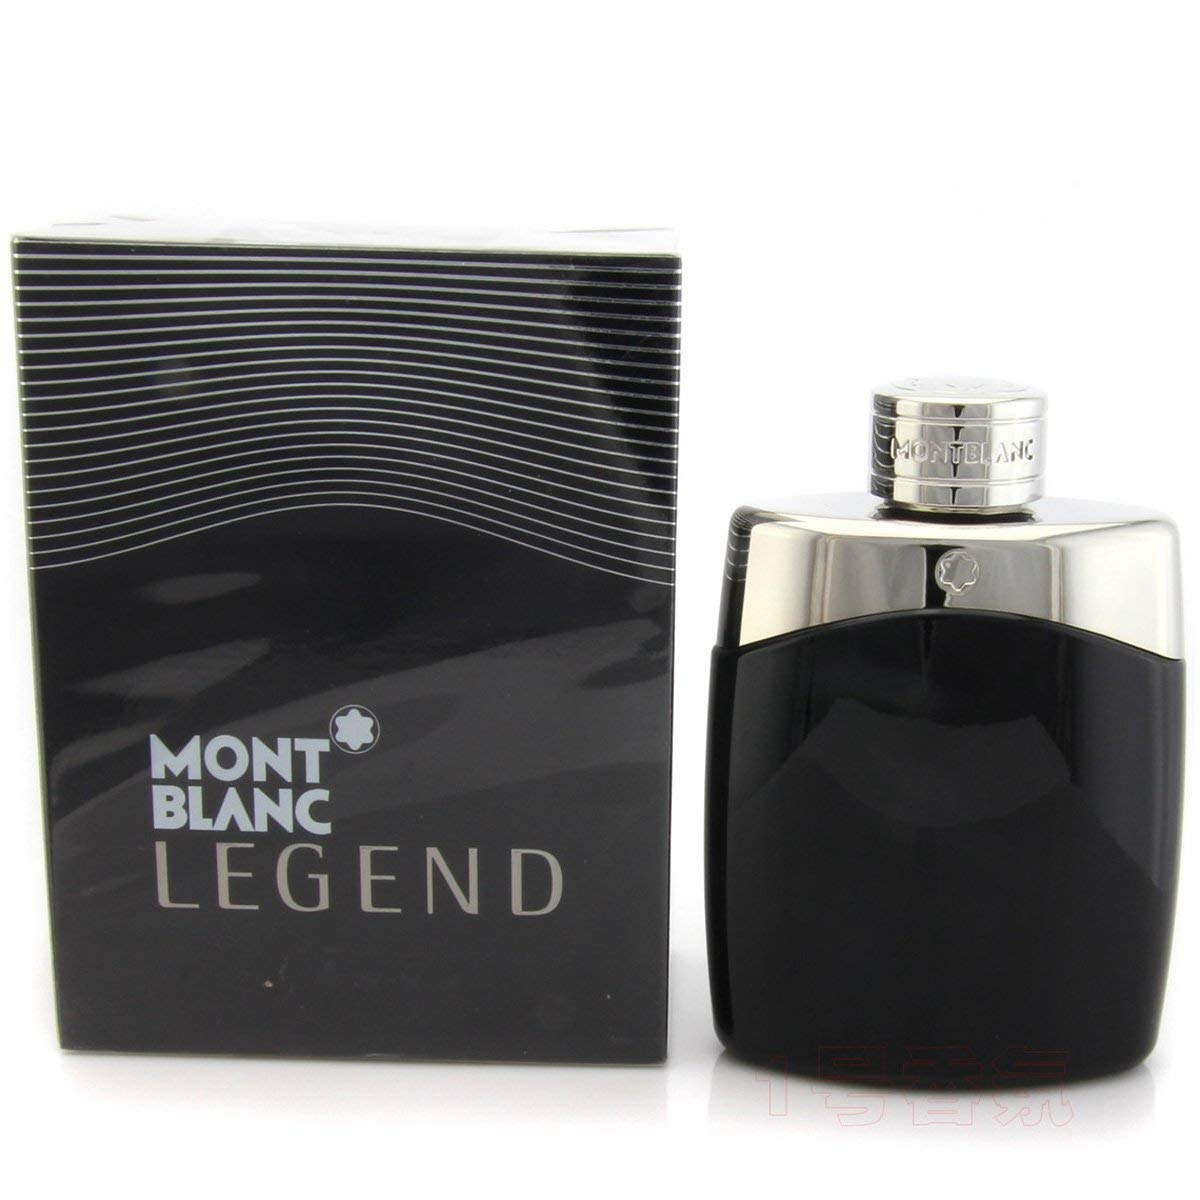 MONT BLANC LEGEND EDT PROFUMO UOMO 100 ML